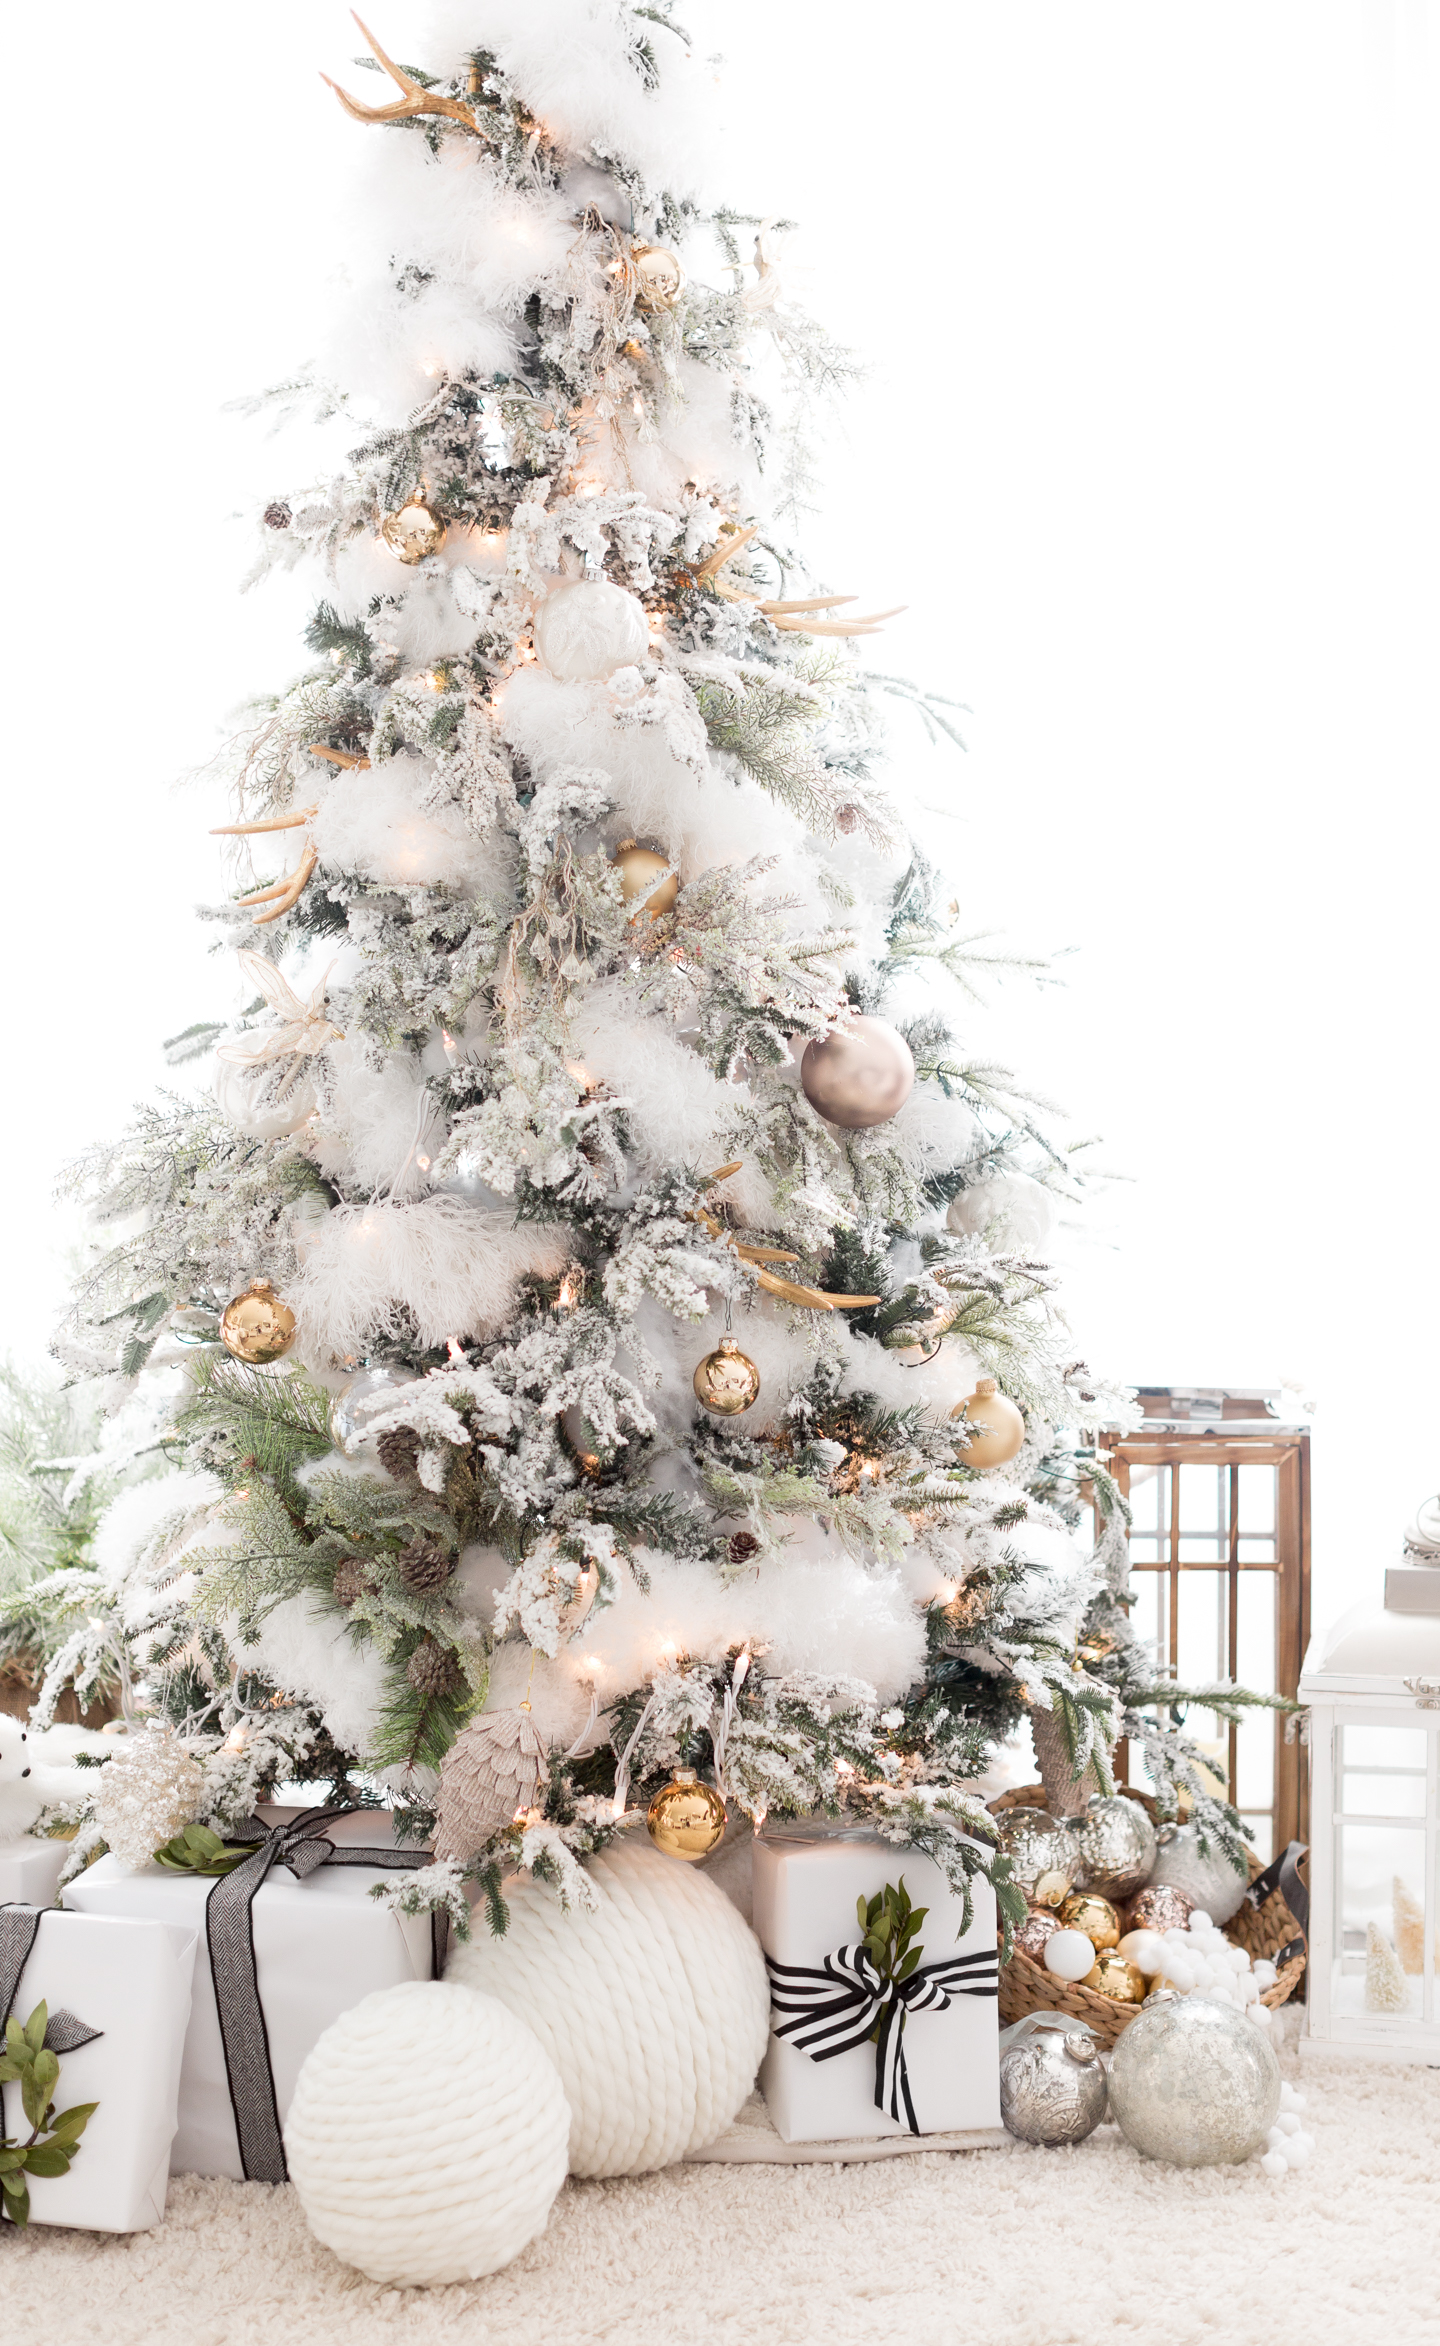 How to Decorate Your Christmas Tree - 10 Ideas - Modern Glam